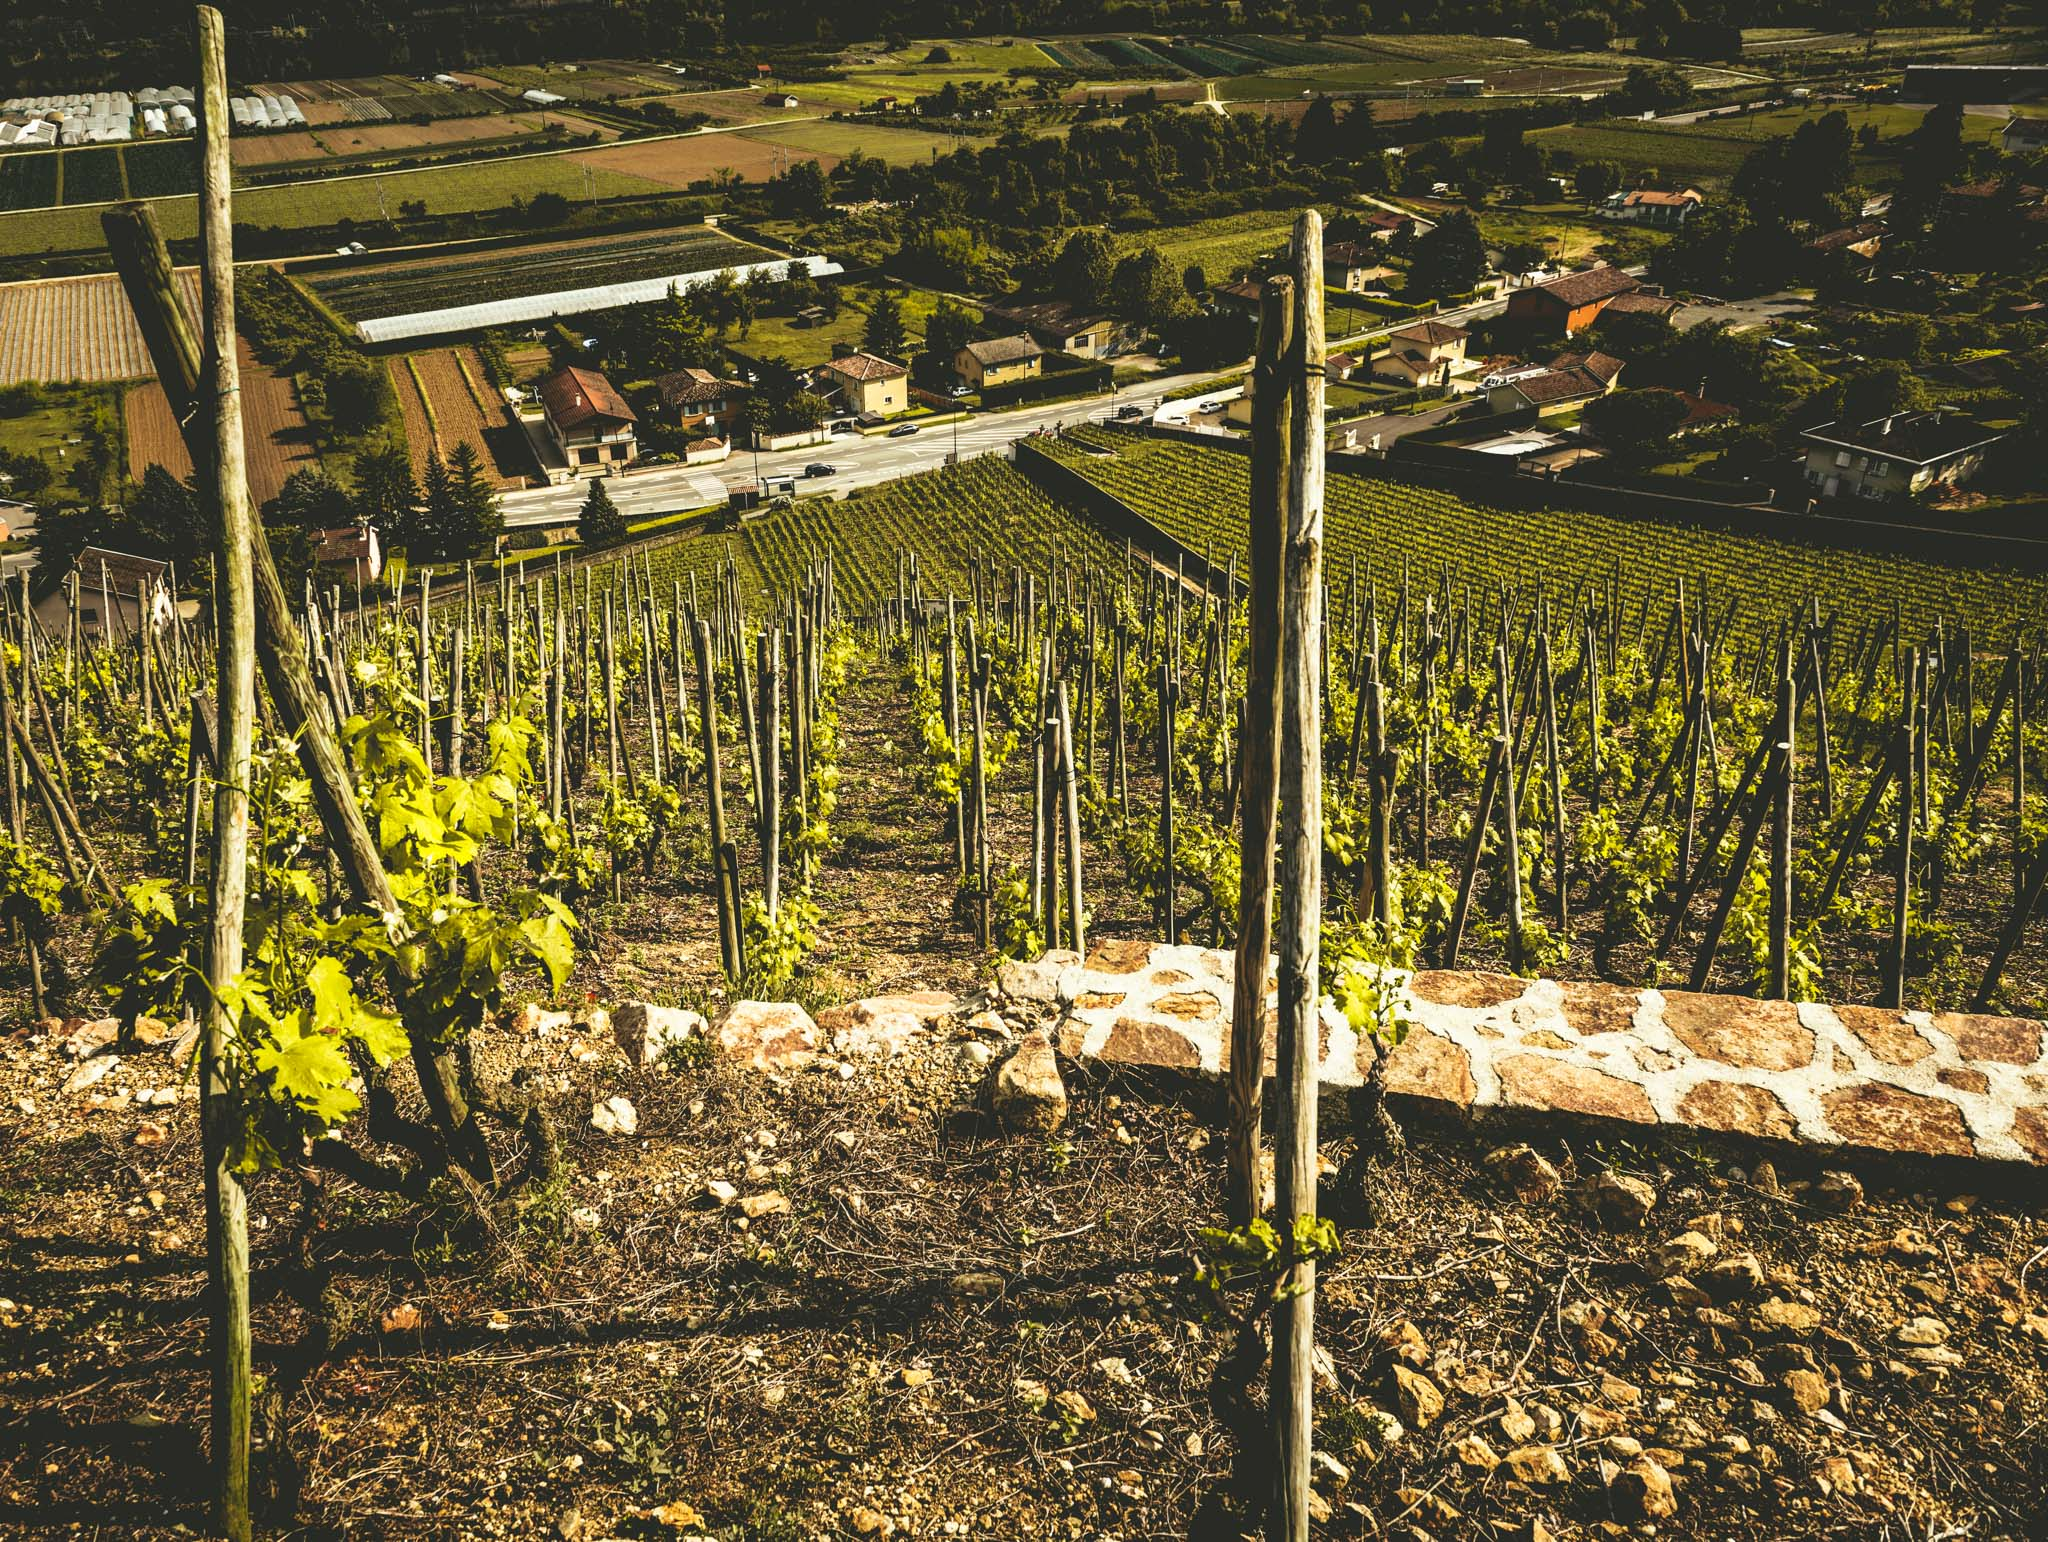 France : Northern Rhone : A view from the top of Cote Rotie's Cote Blonde